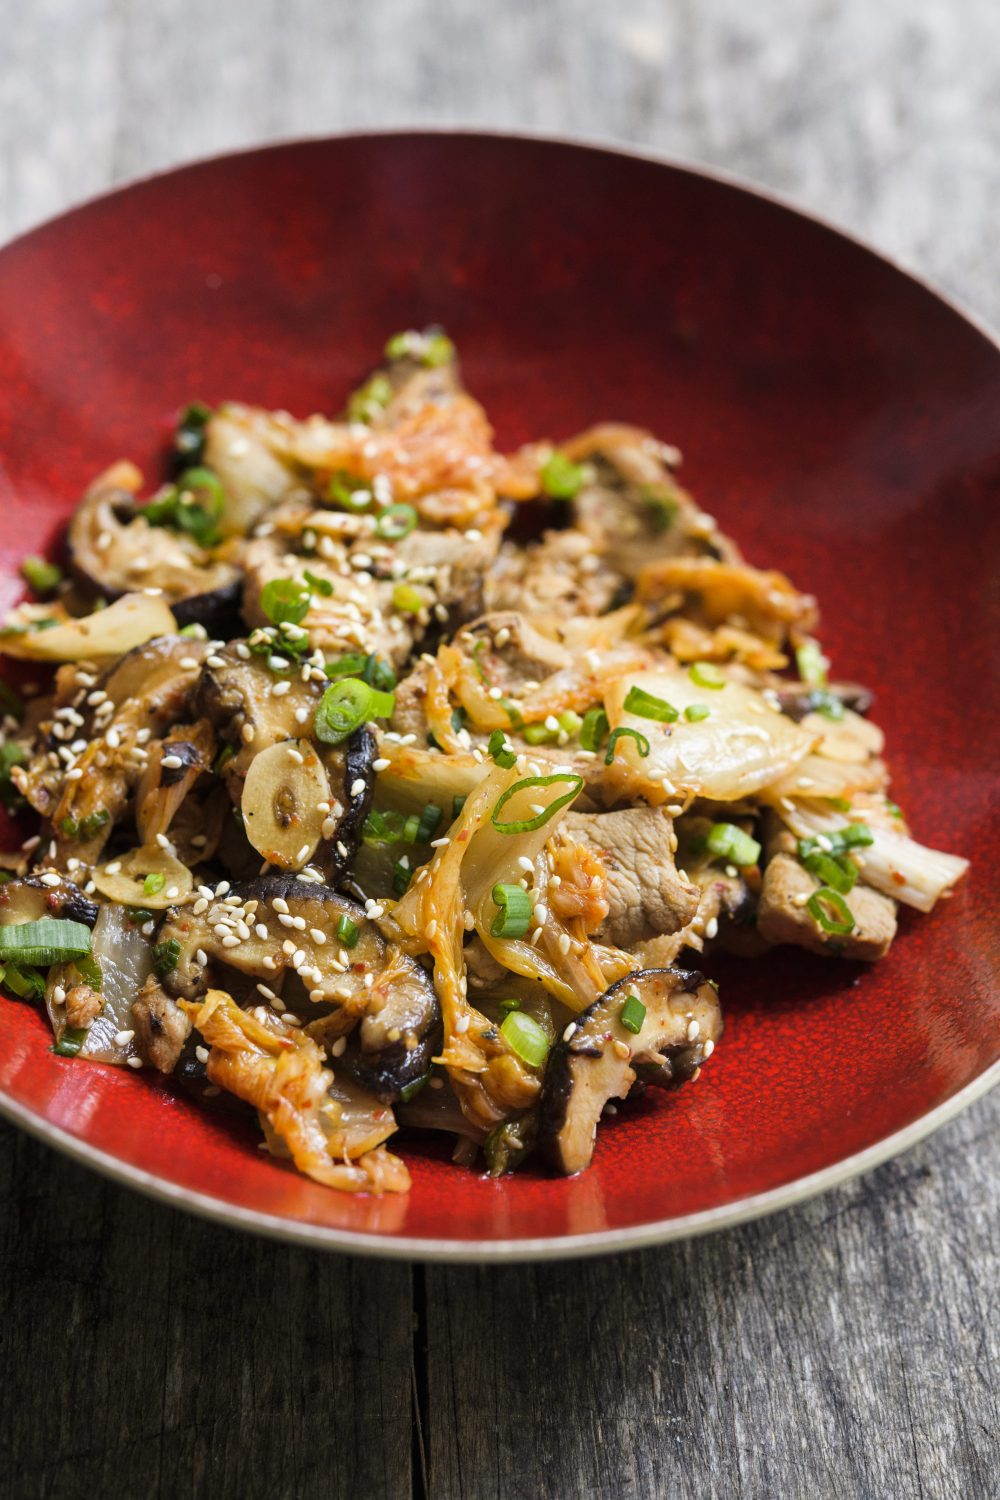 Sesame Stir-Fried Pork with Shiitakes